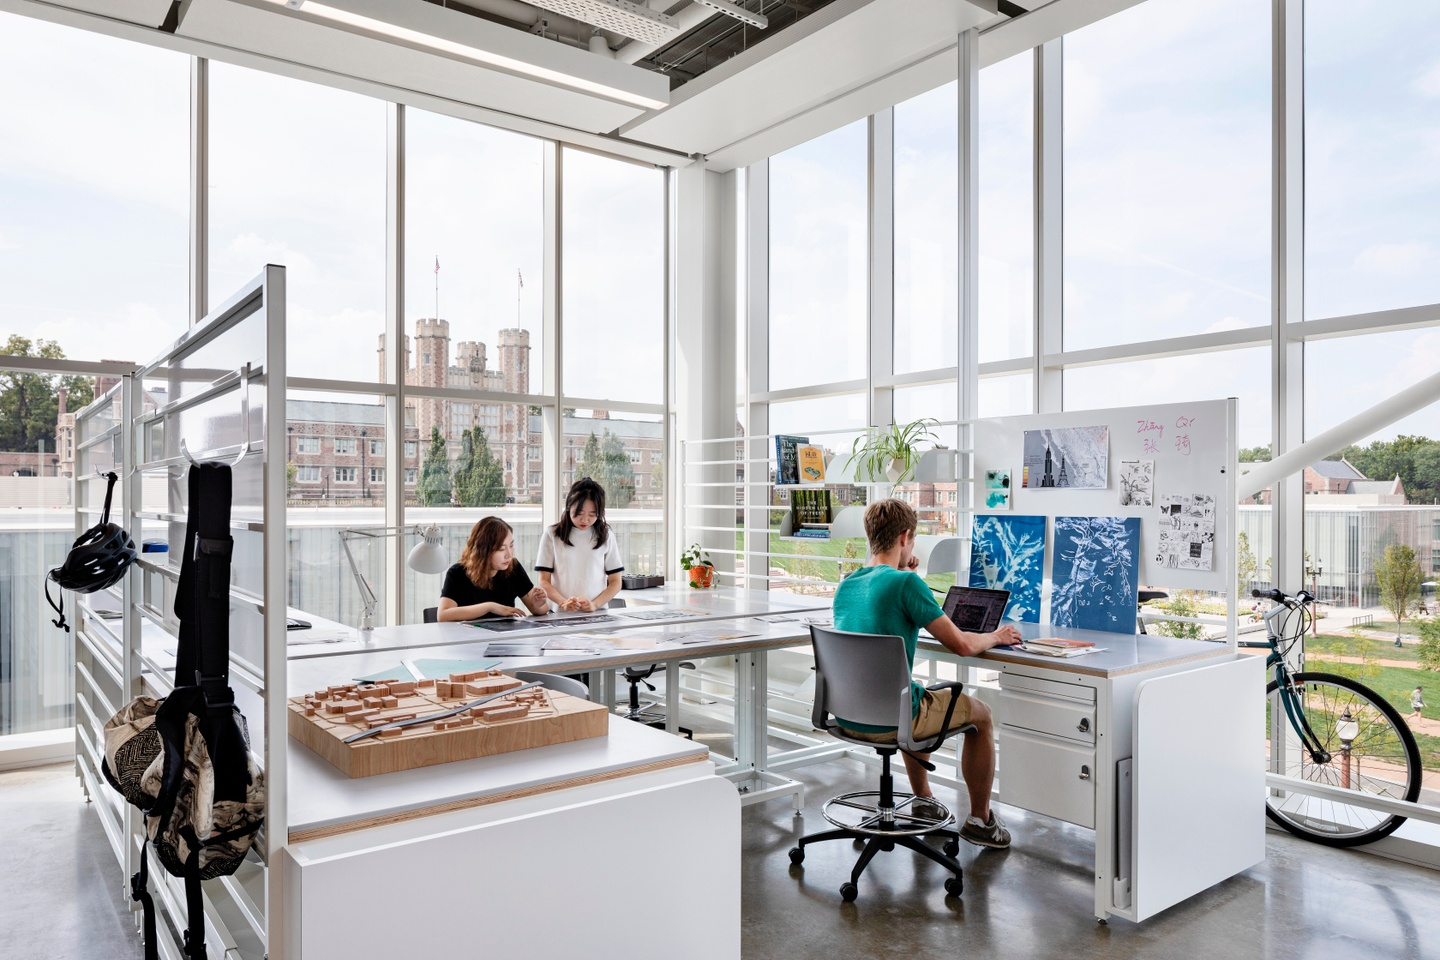 Photo of students in a spacious studio area with white desk spaces, and floor-to-ceiling windows in the corners, looking out onto the Washington University campus.